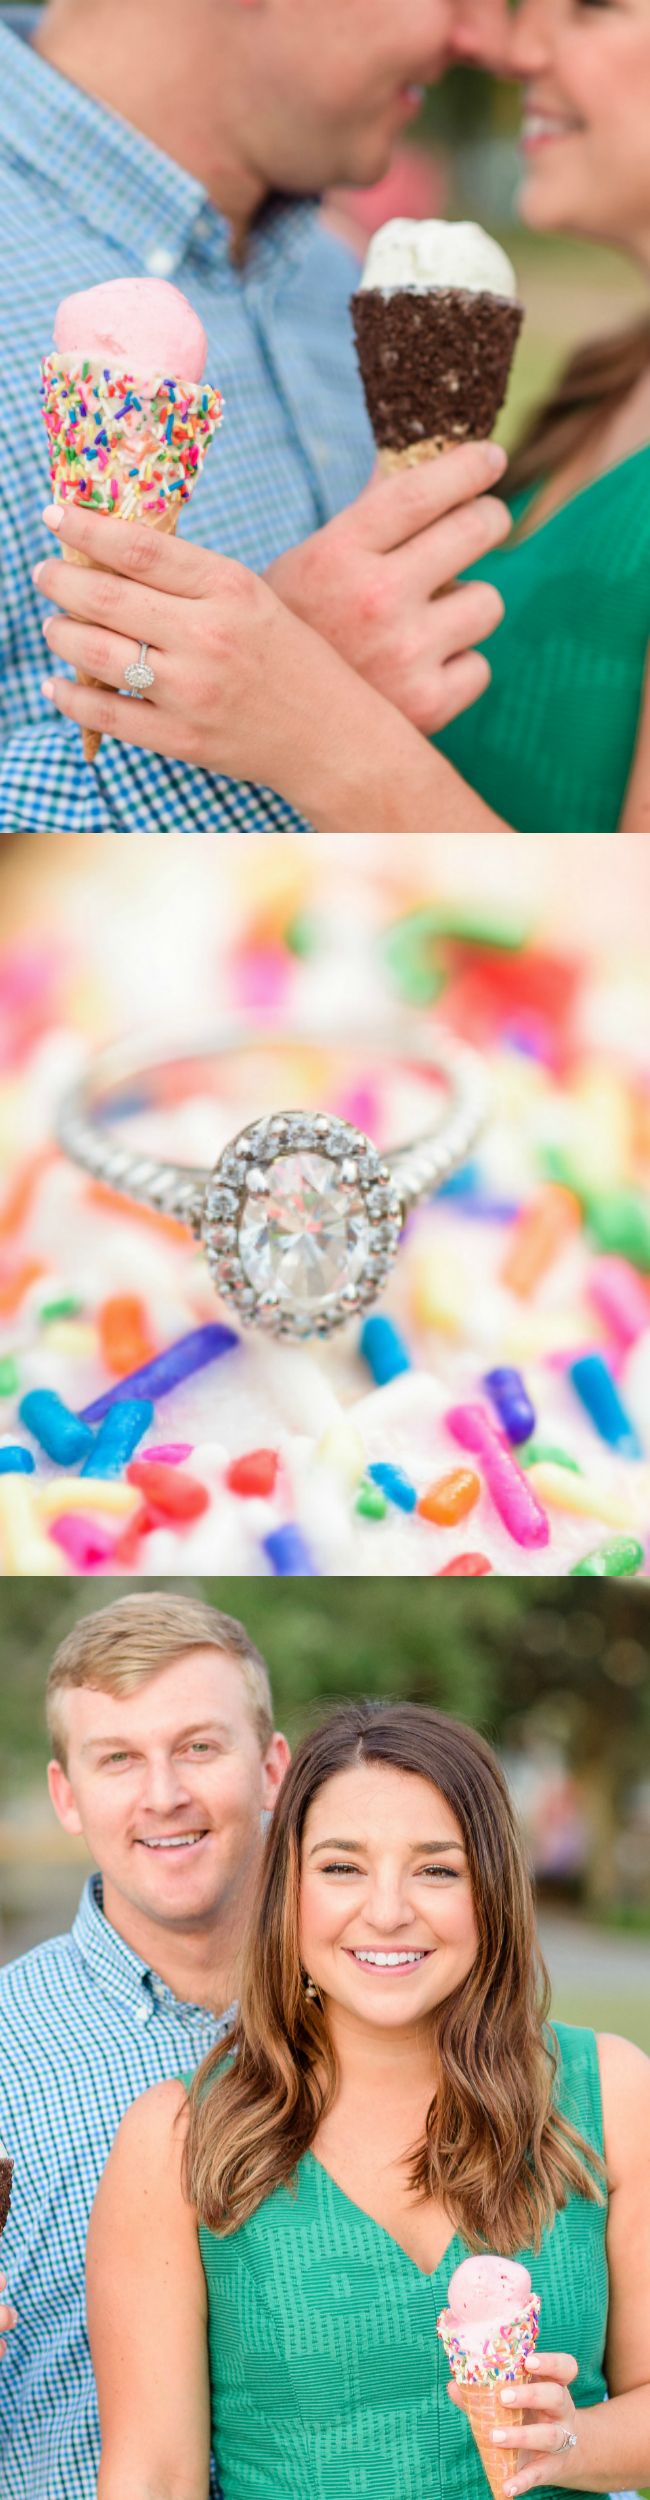 Ice Cream Date Night Inspired Engagement Session | Photo Credit: The Veil Wedding Photography